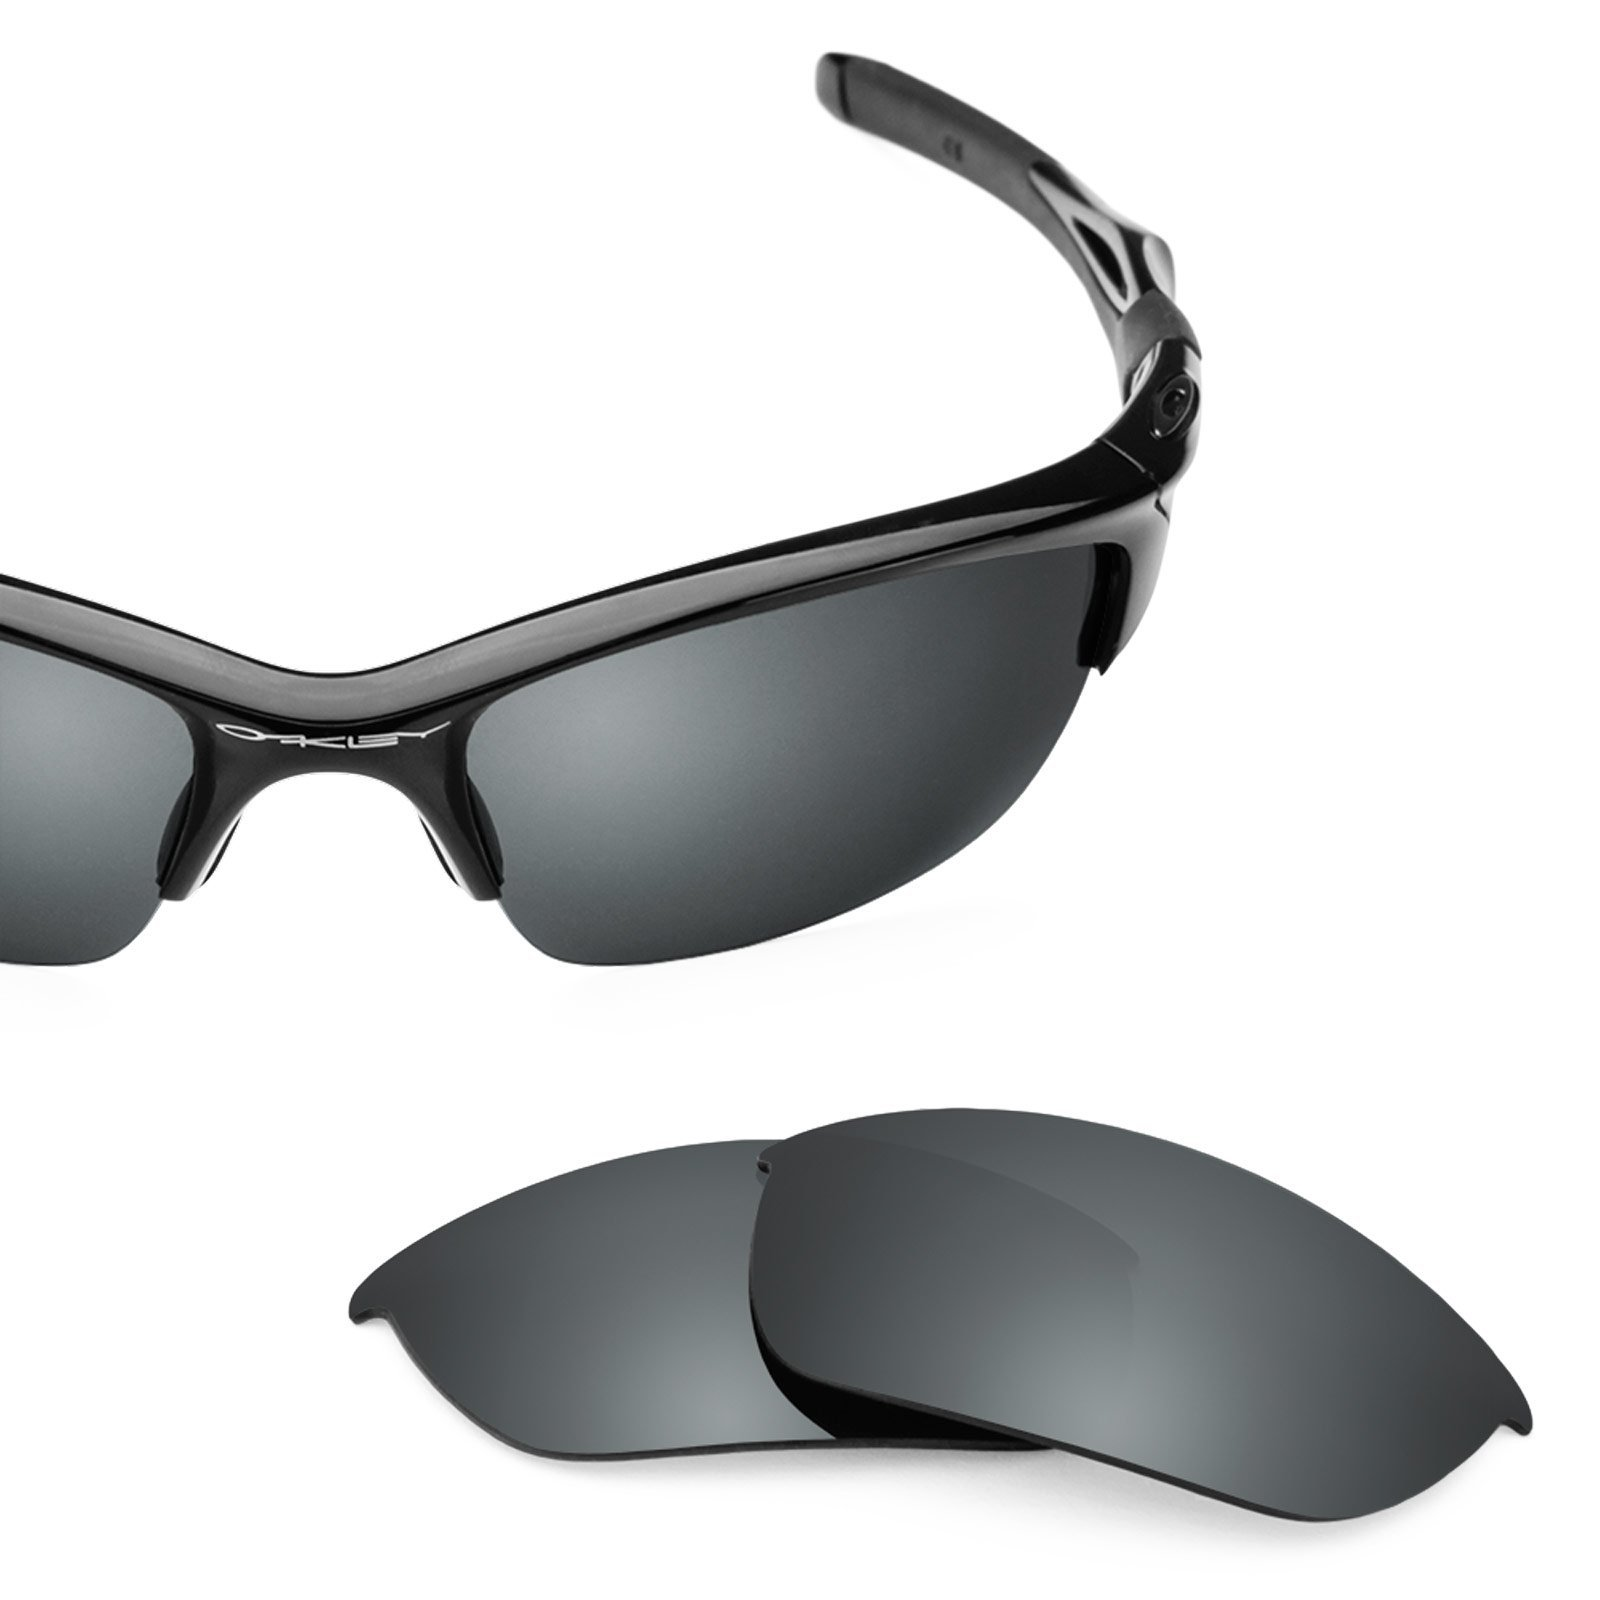 Revant Polarized Replacement Lenses for Oakley Half Jacket 2.0Black Chrome MirrorShield